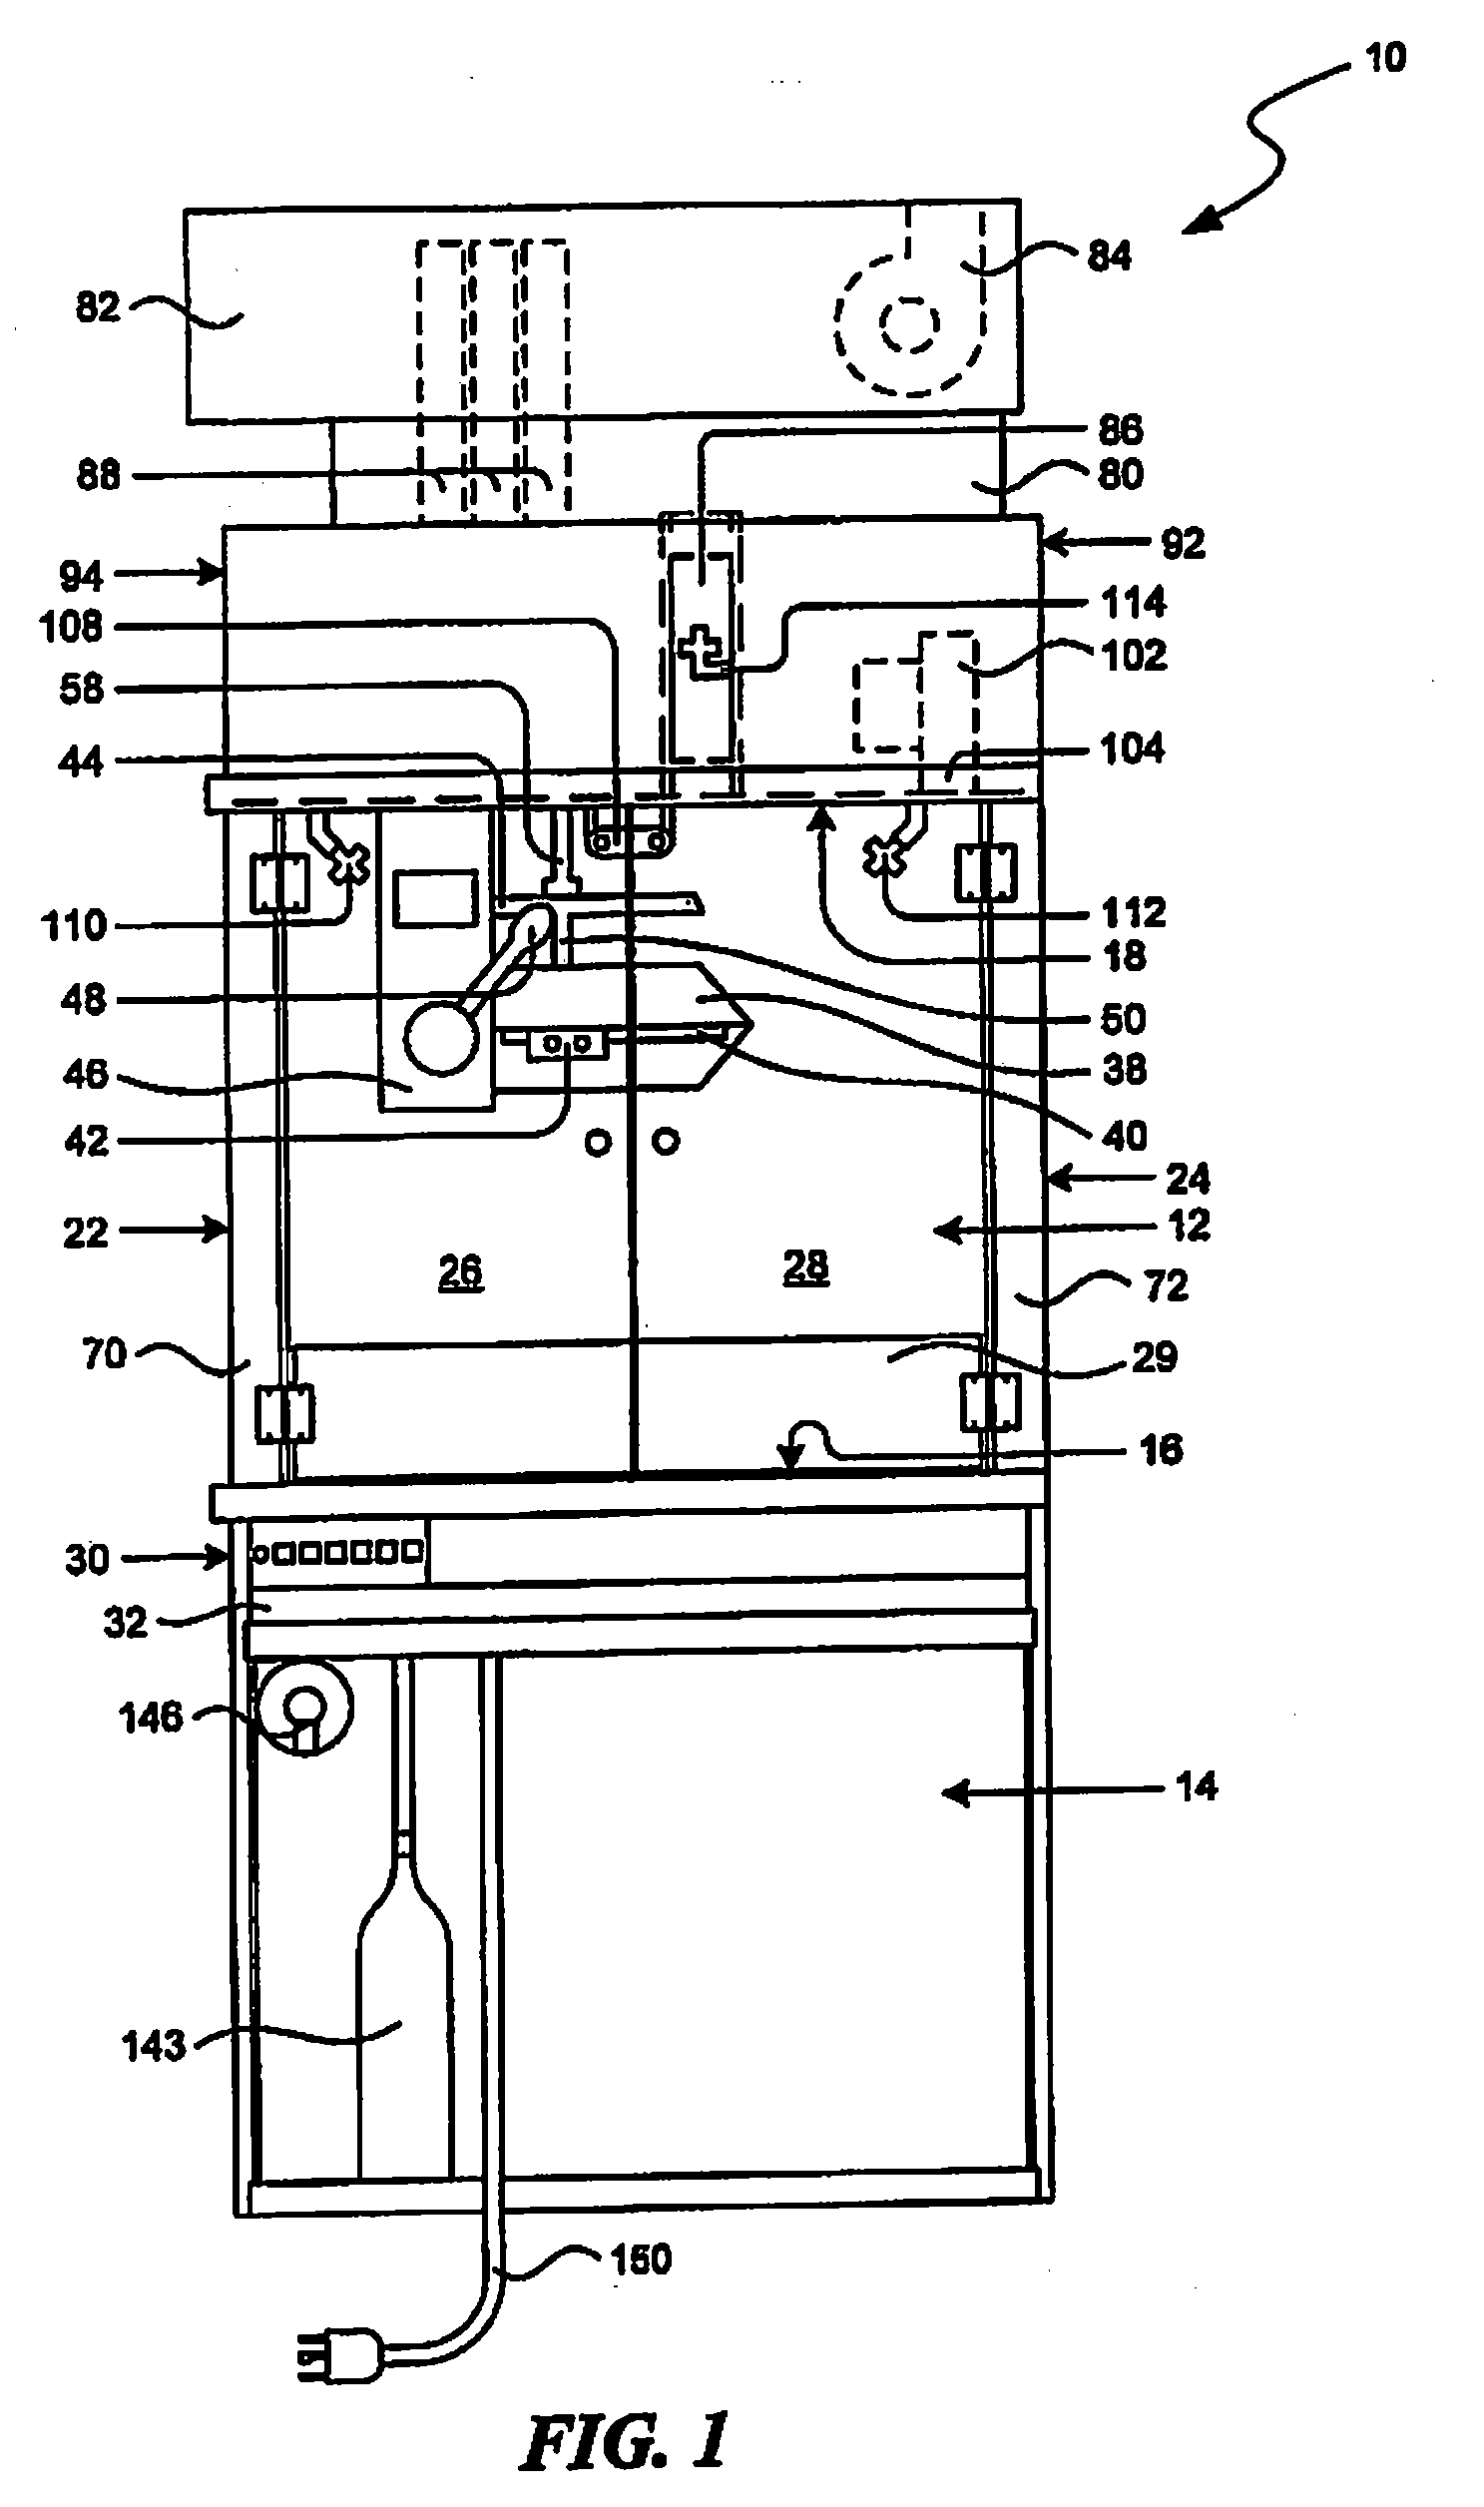 Contemporary Hood Ansul System Wiring Diagram Embellishment - Wiring ...